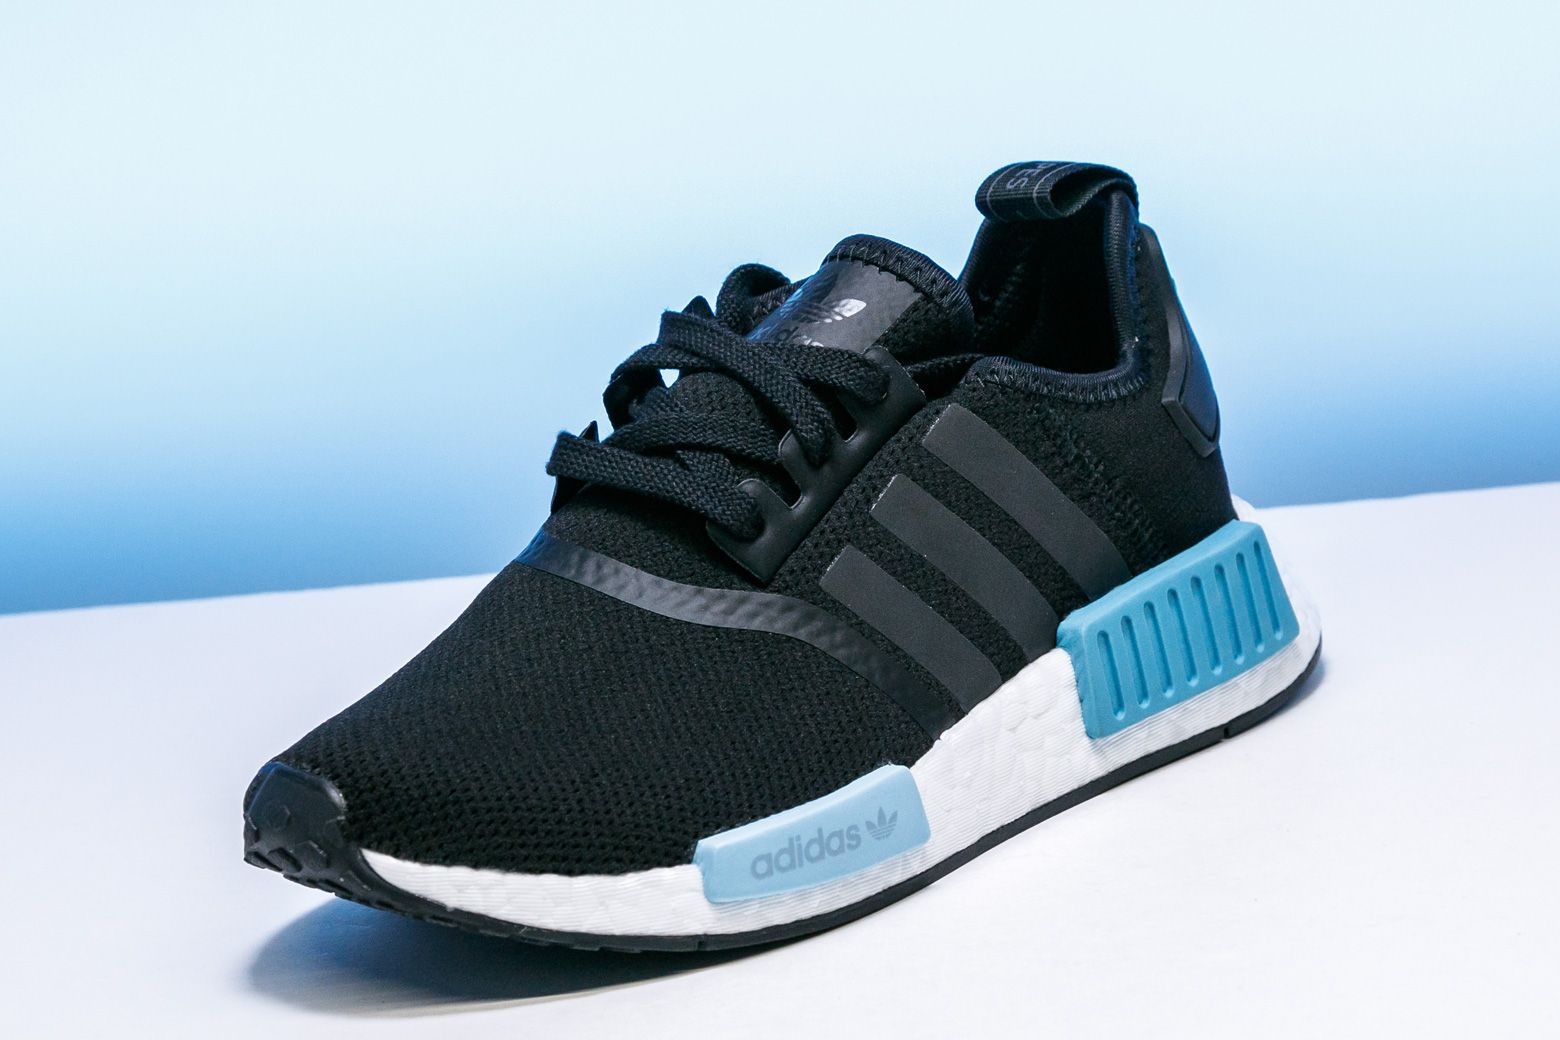 The black mesh upper and bumpers in two hues of blue make this women s  exclusive adidas NMD R1 a sick summer shoe. 0483054f8